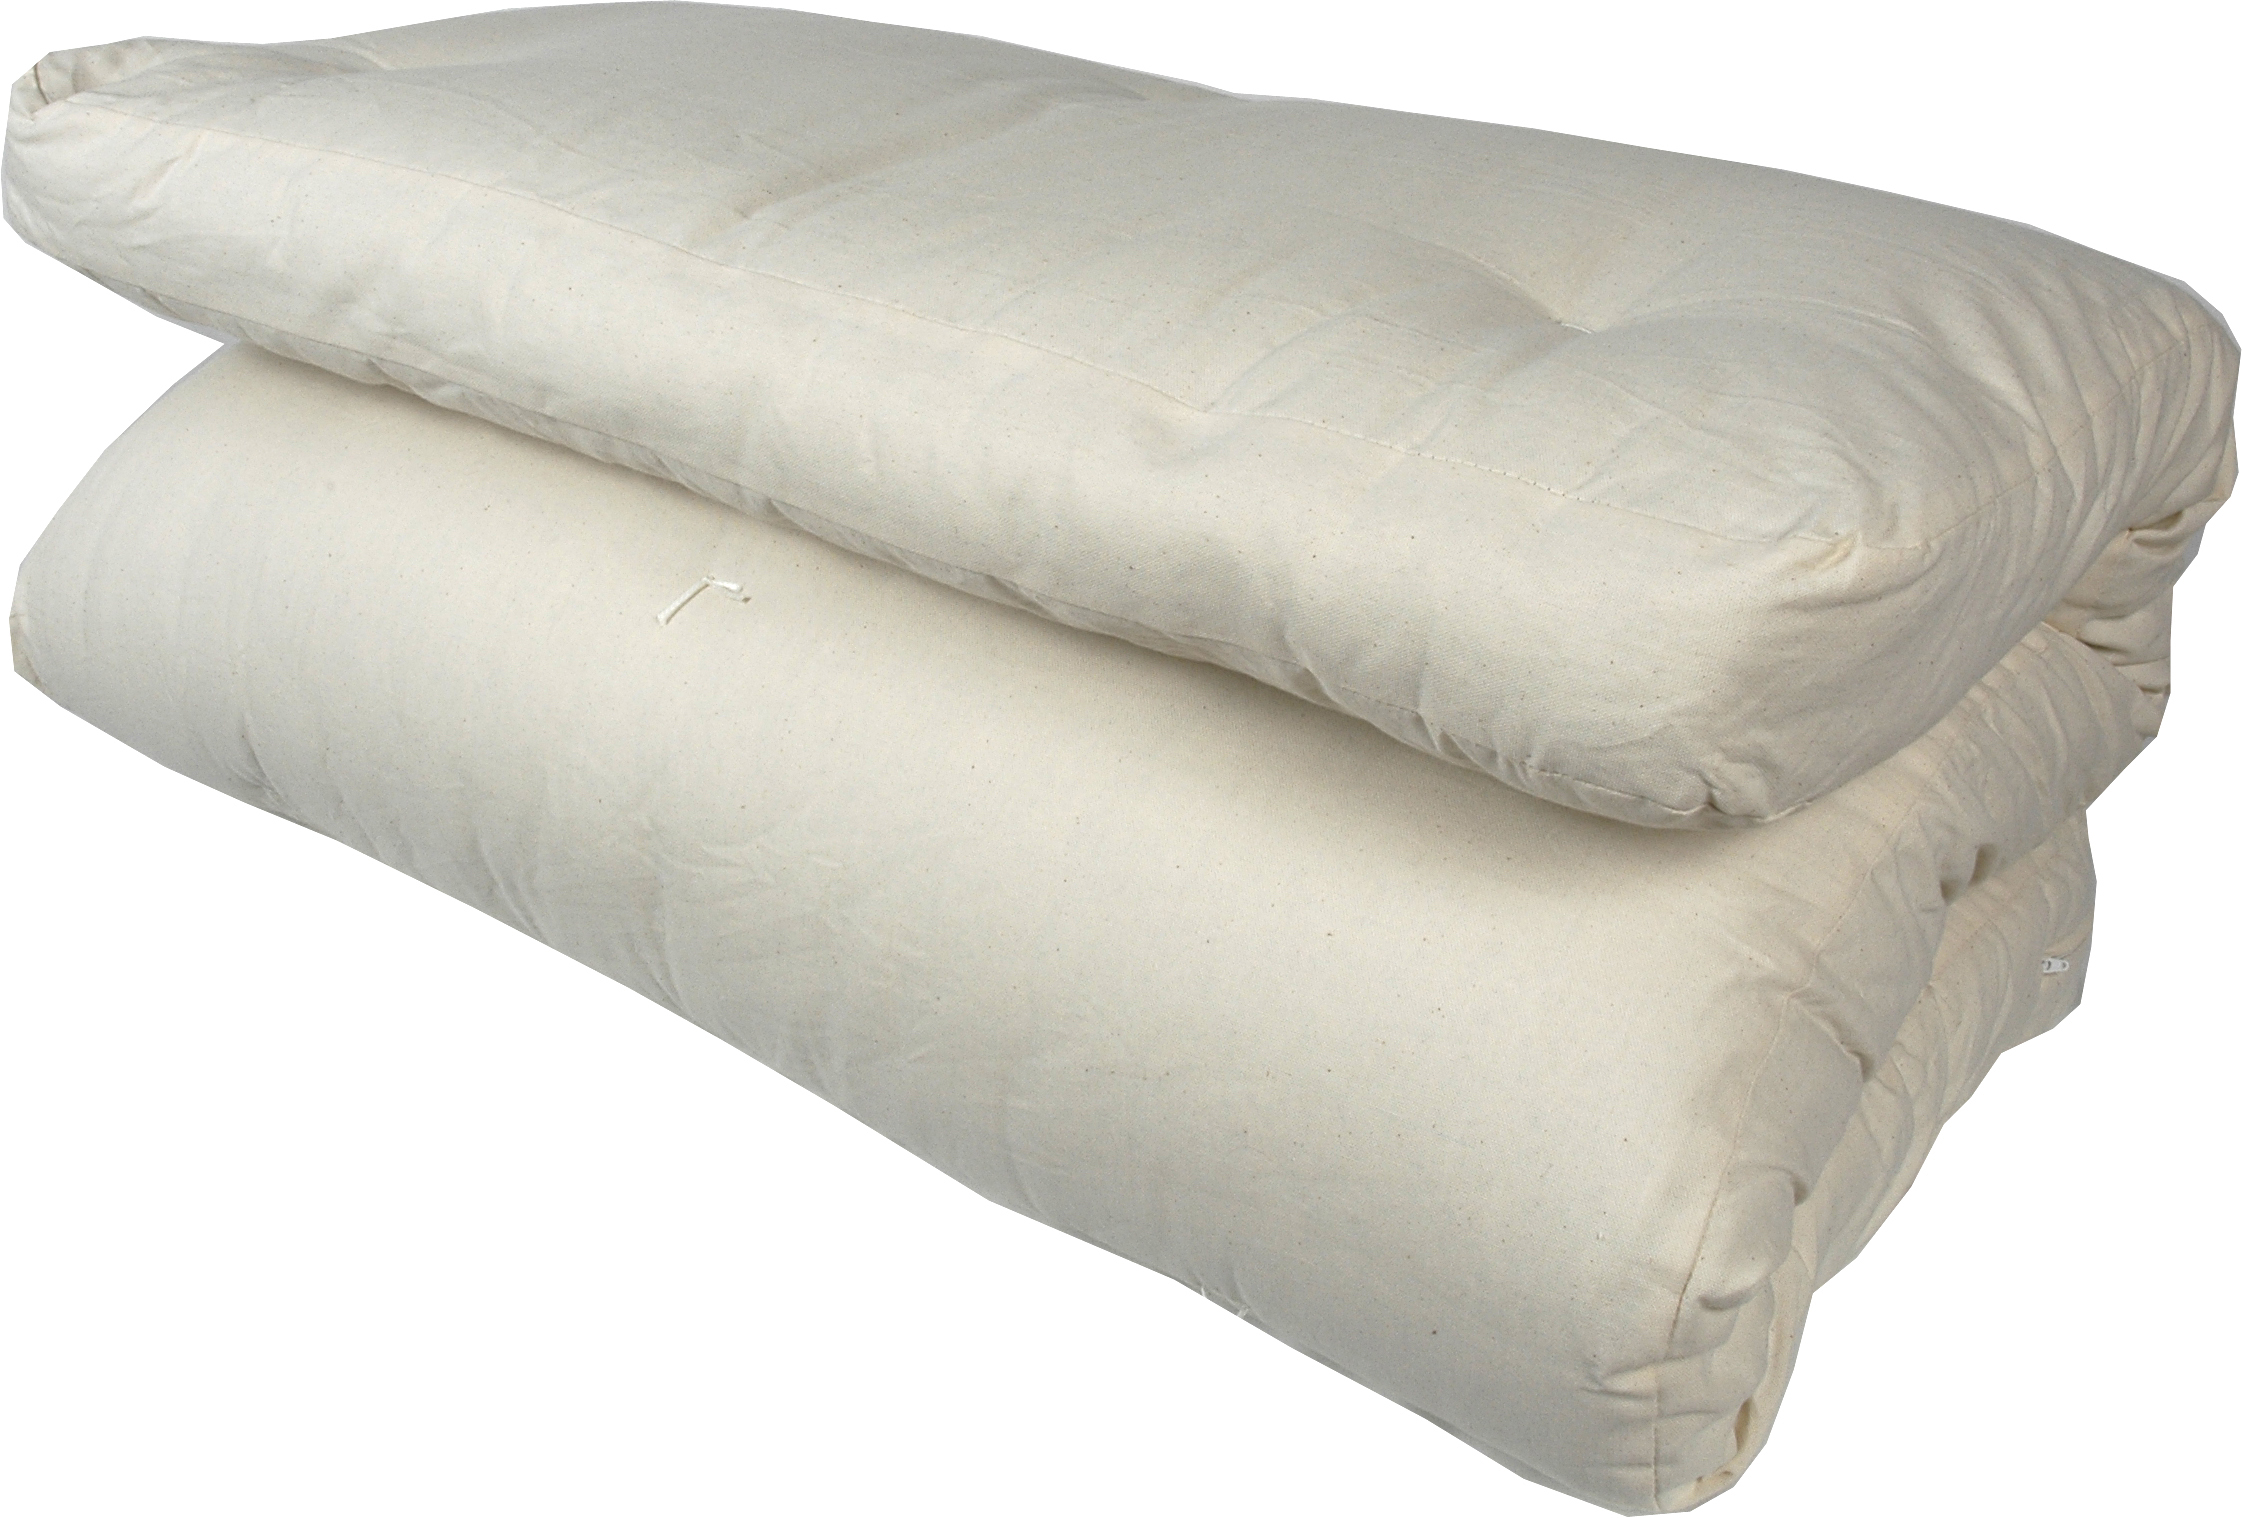 Where To Buy A Futon Mattress